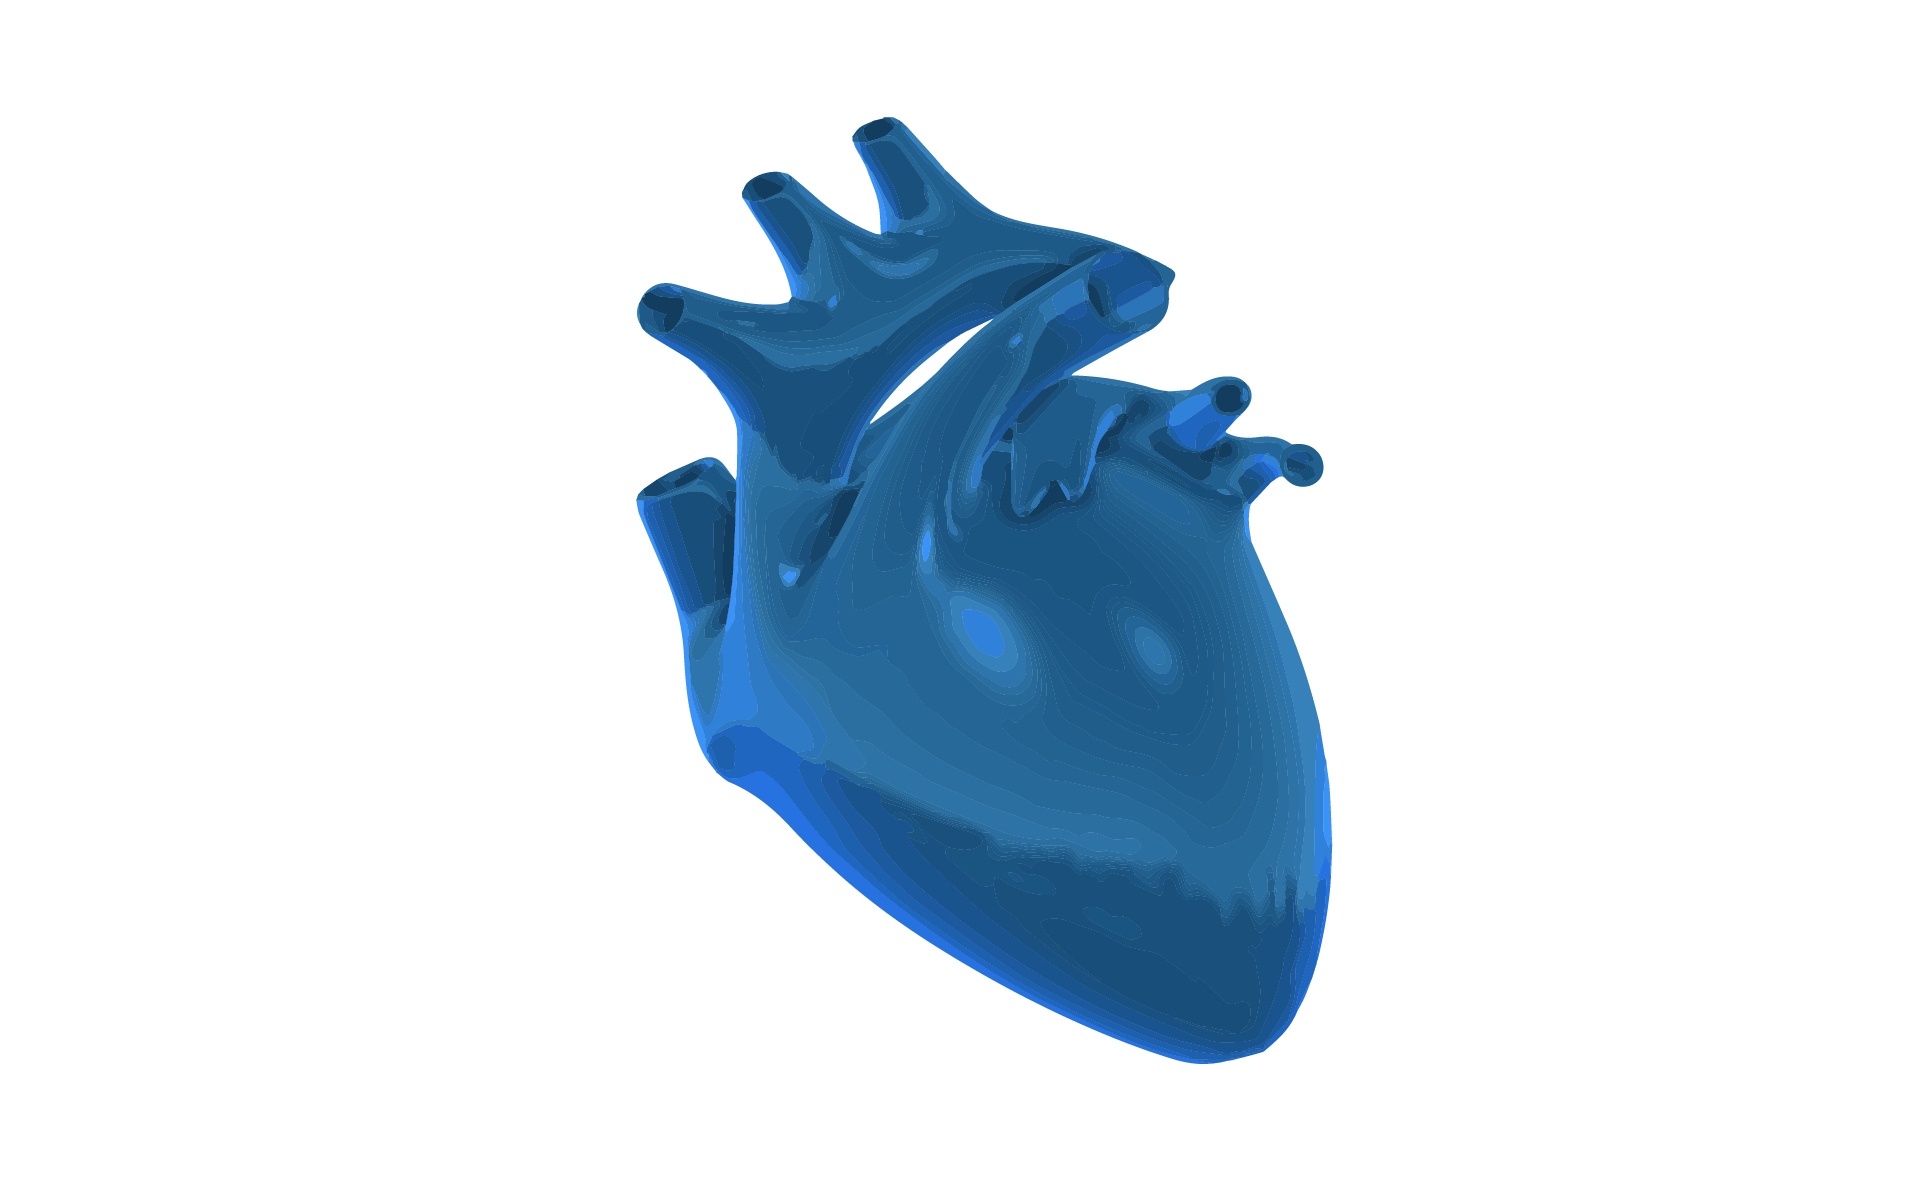 A 3d Graphic image of the heart